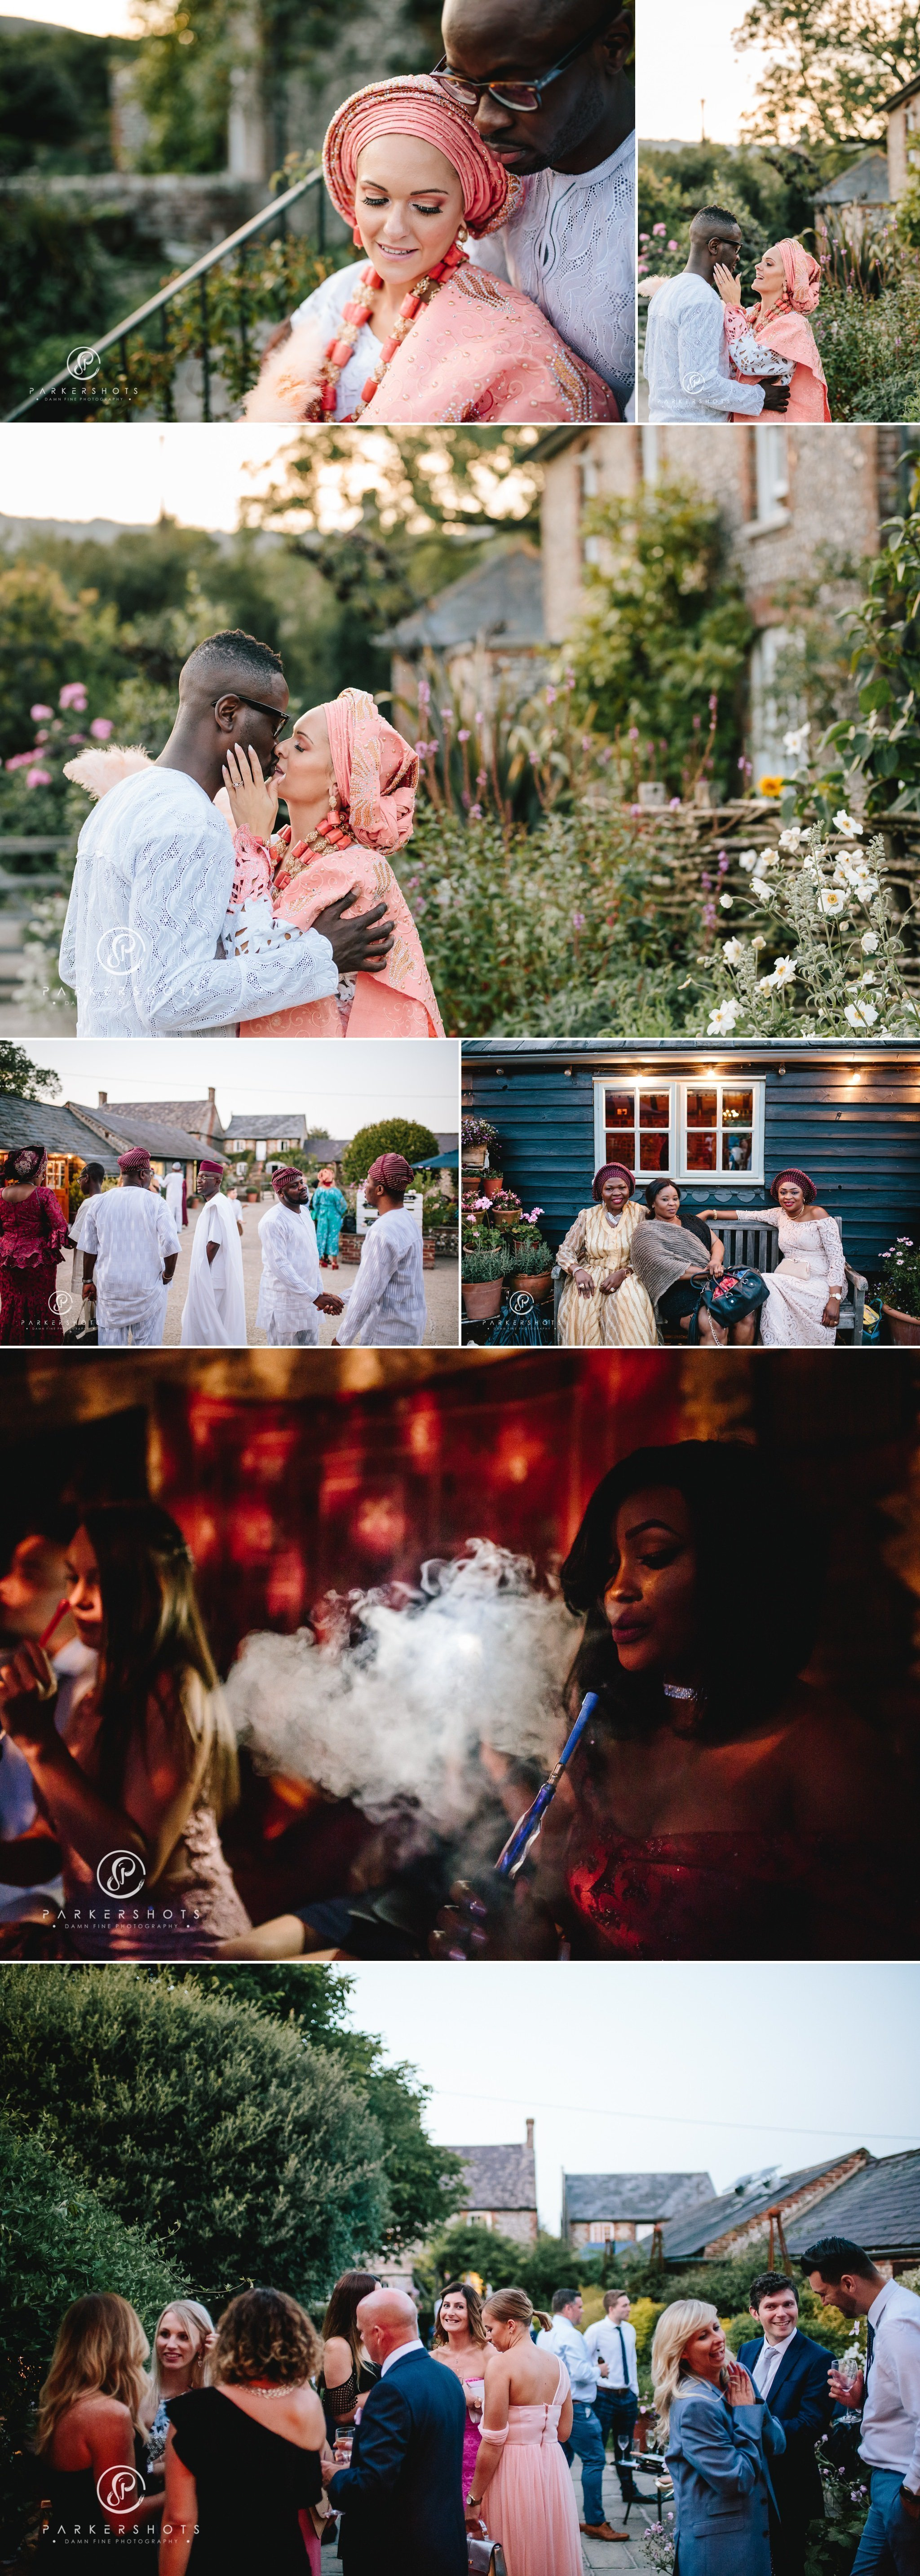 Evening portraits of bride and groom at Upwaltham Barns